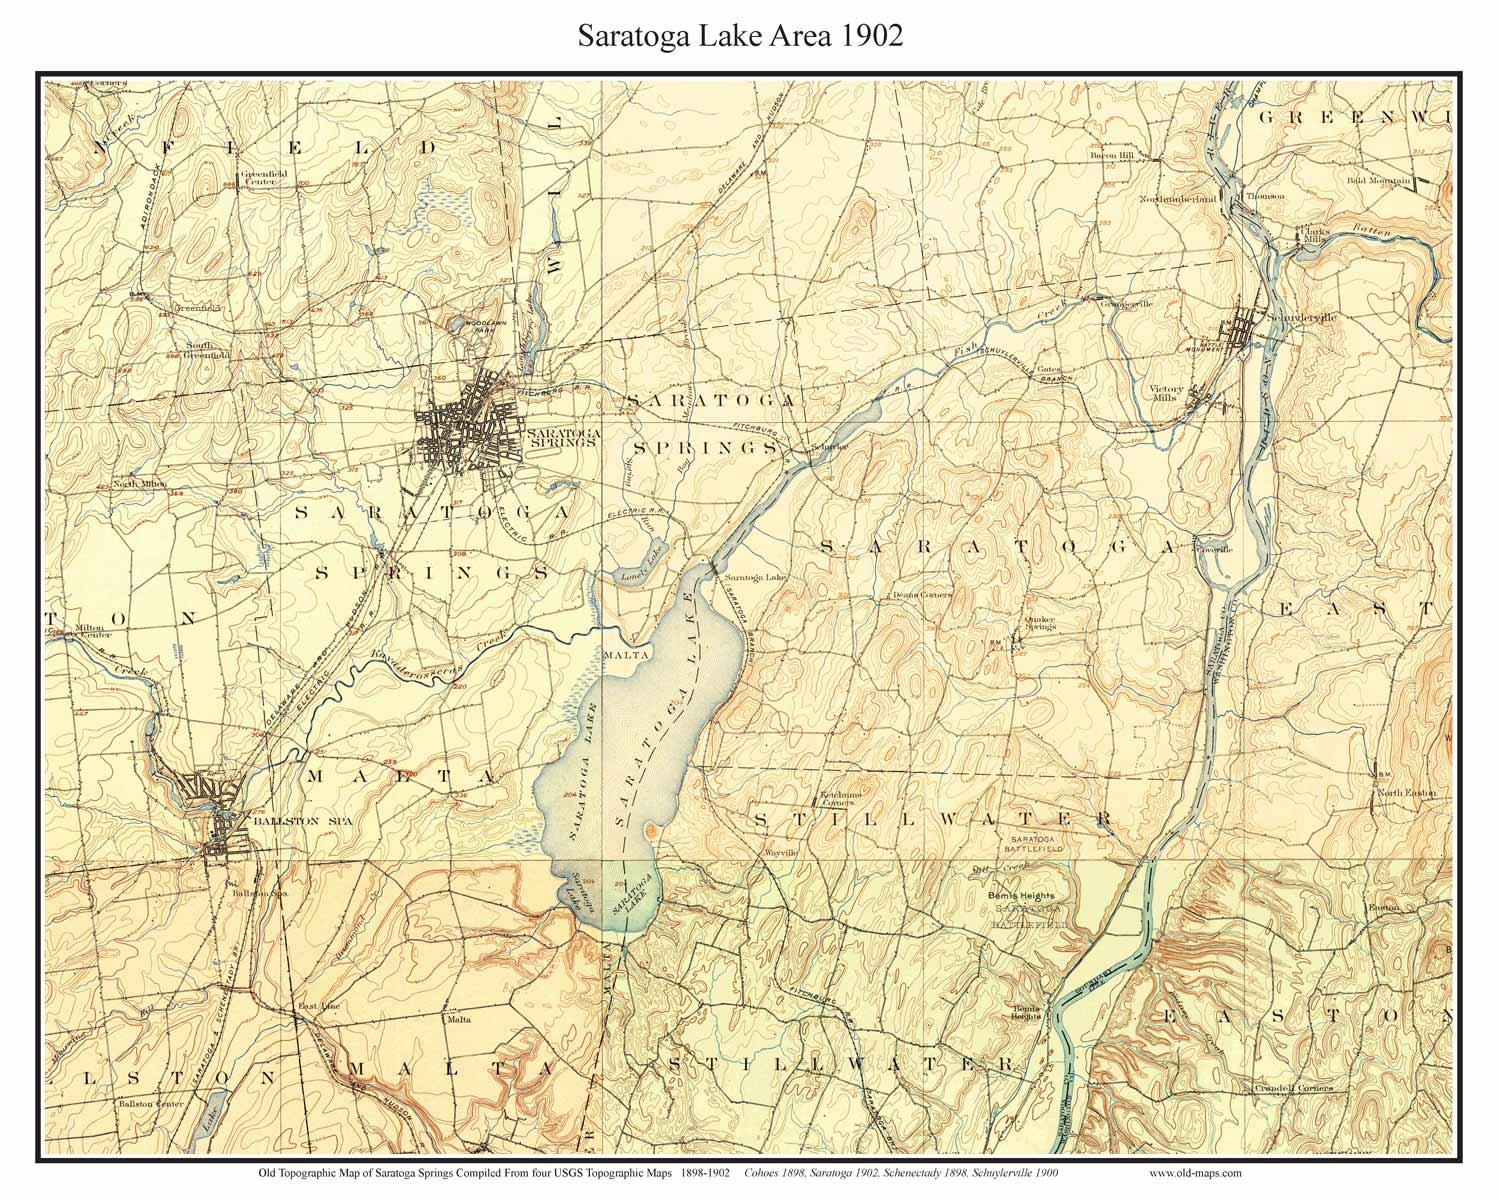 Old USGS Topo Maps Of Saratoga County New York - Nyc rat map